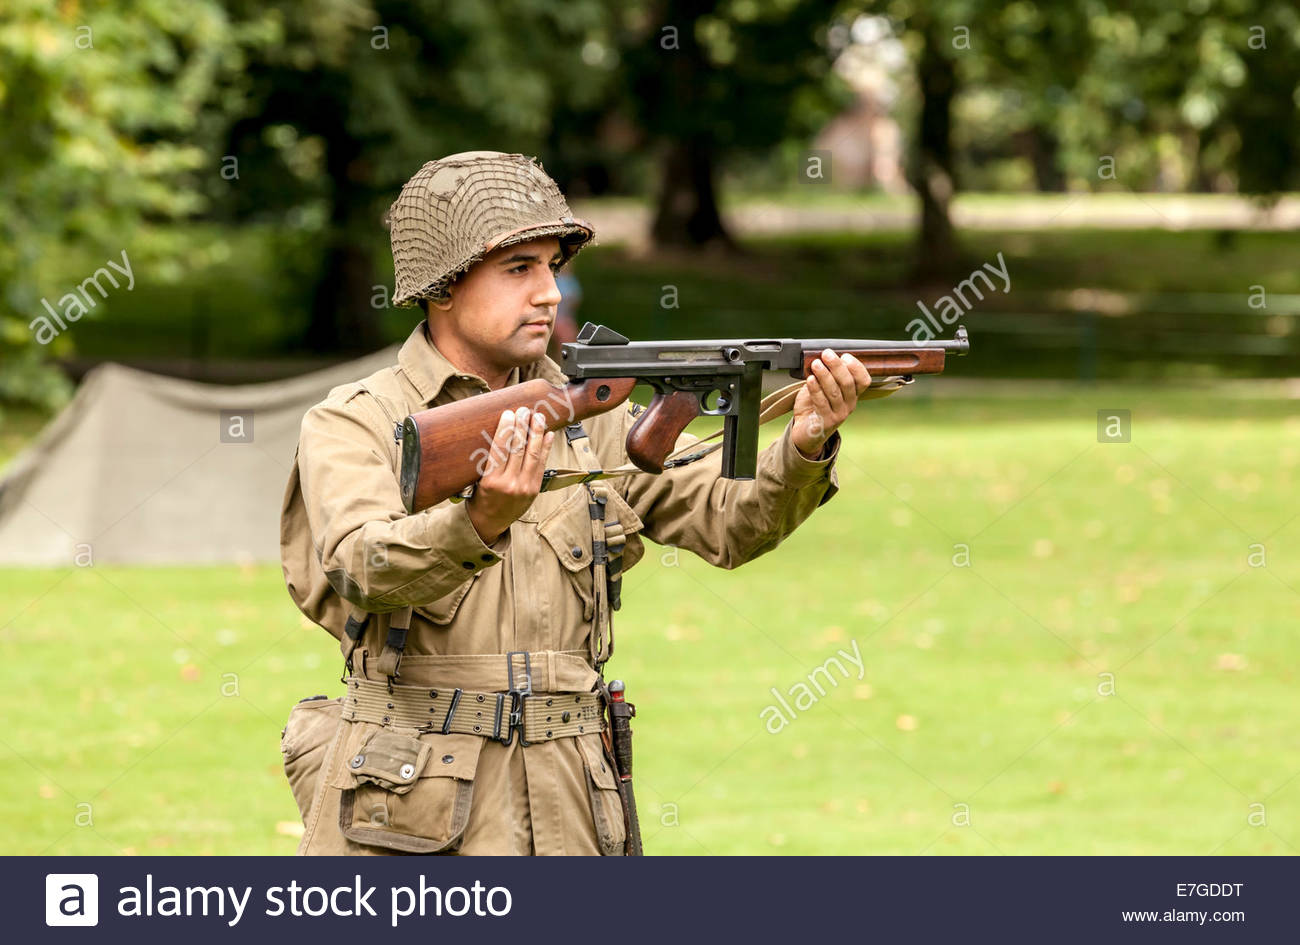 ww2 reenactment american soldier holding a thompson